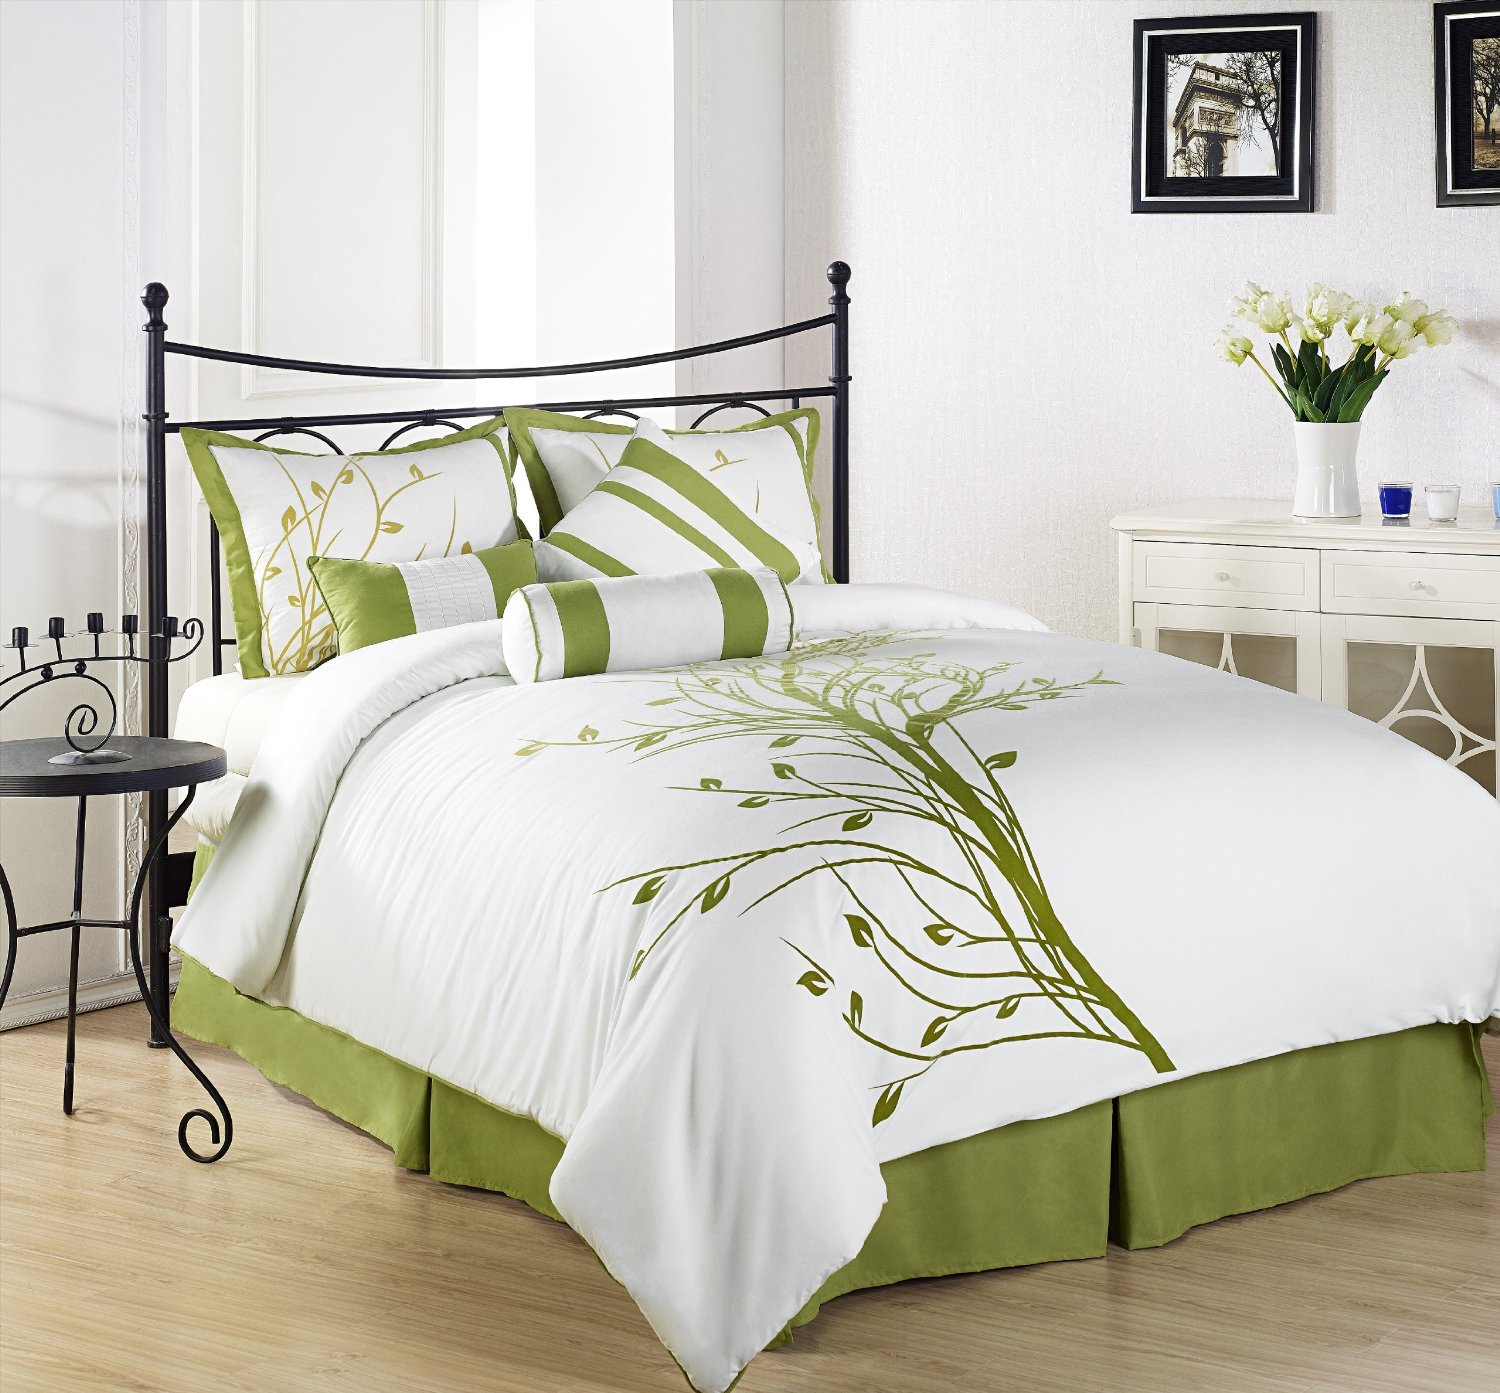 Chezmoi Collection 7 Piece Embroidery Floral Plants Tree Bedding Comforter Set Home Garden Bedding